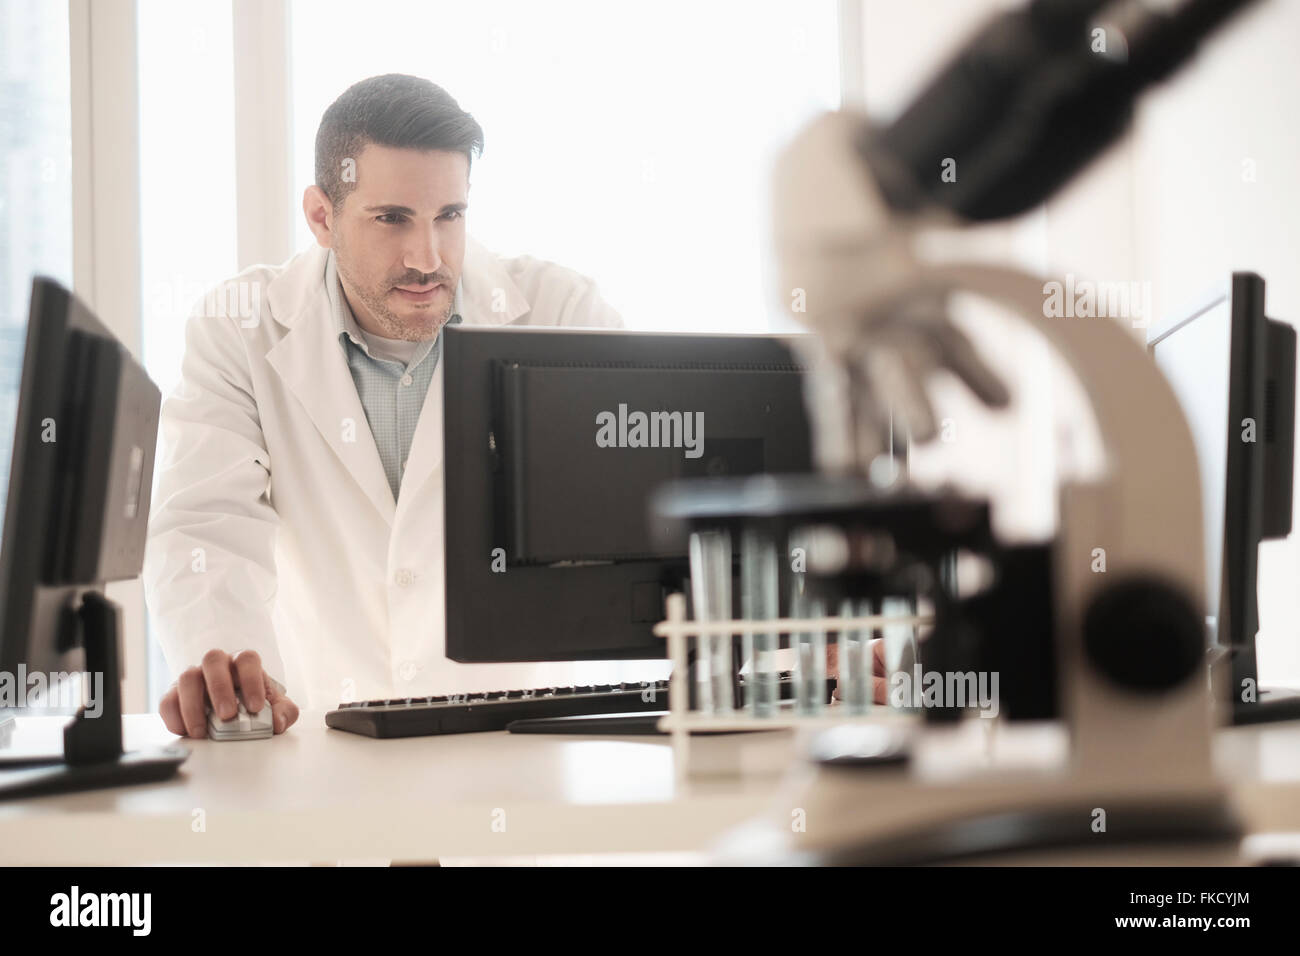 Man using computer in laboratory - Stock Image